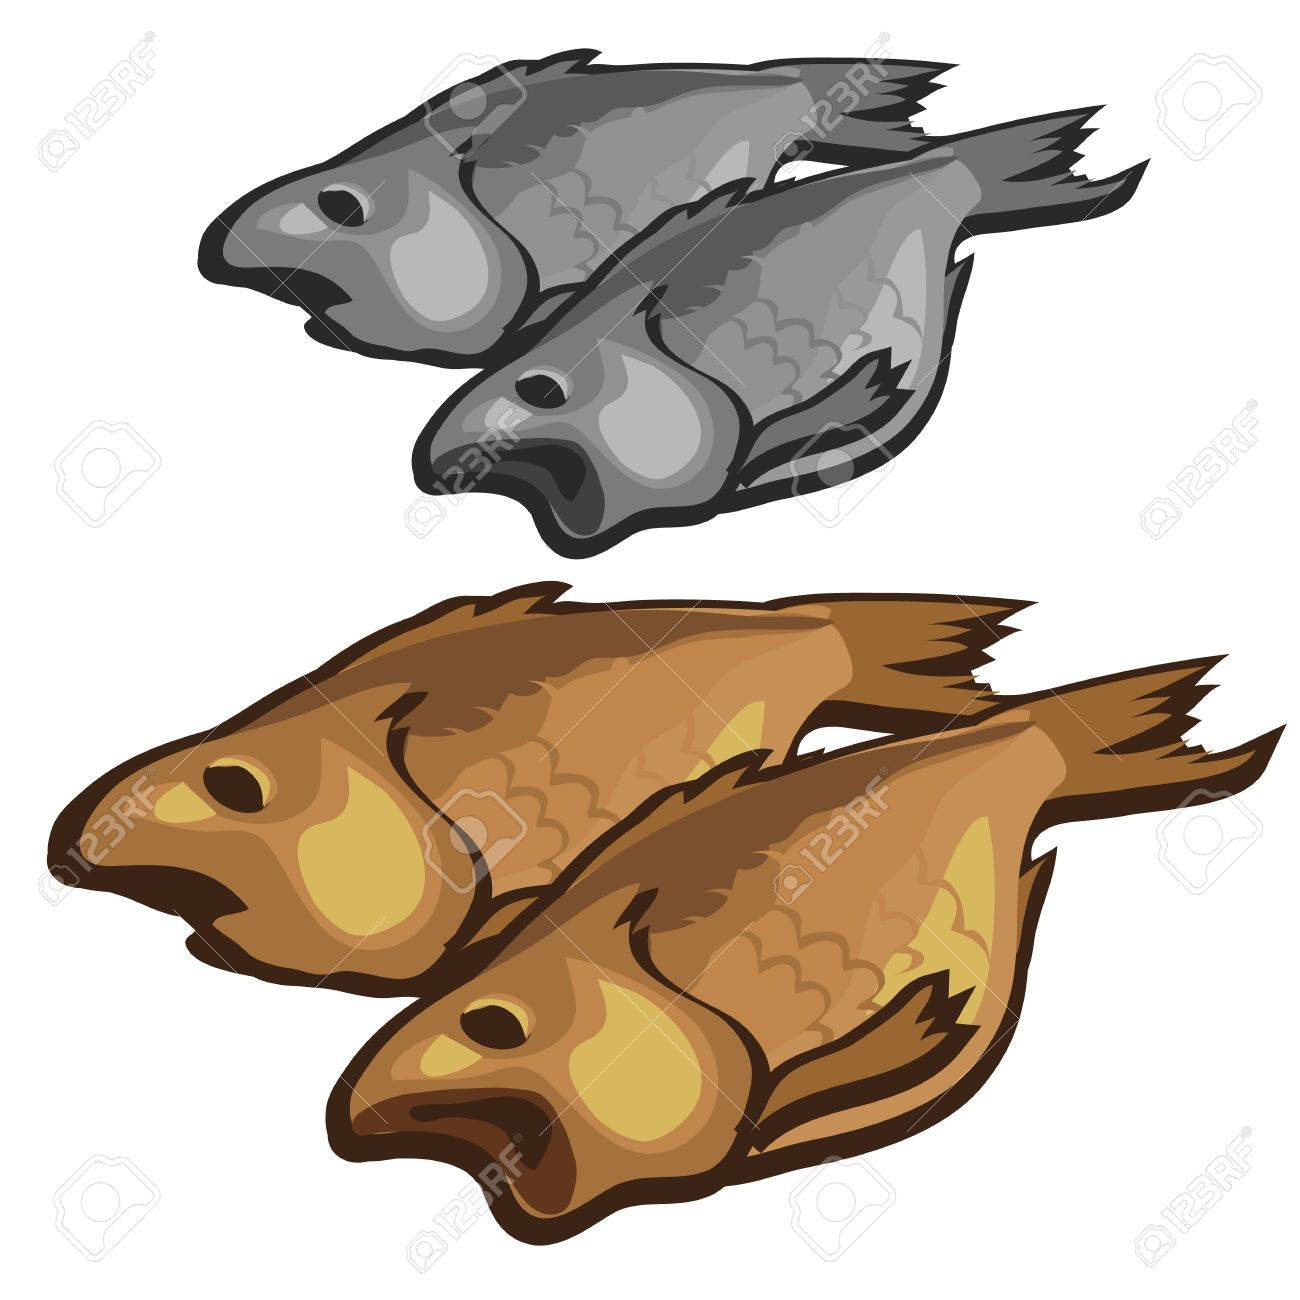 303 Dried Fish Stock Vector Illustration And Royalty Free Dried ... for Dried Fish Clipart  113cpg